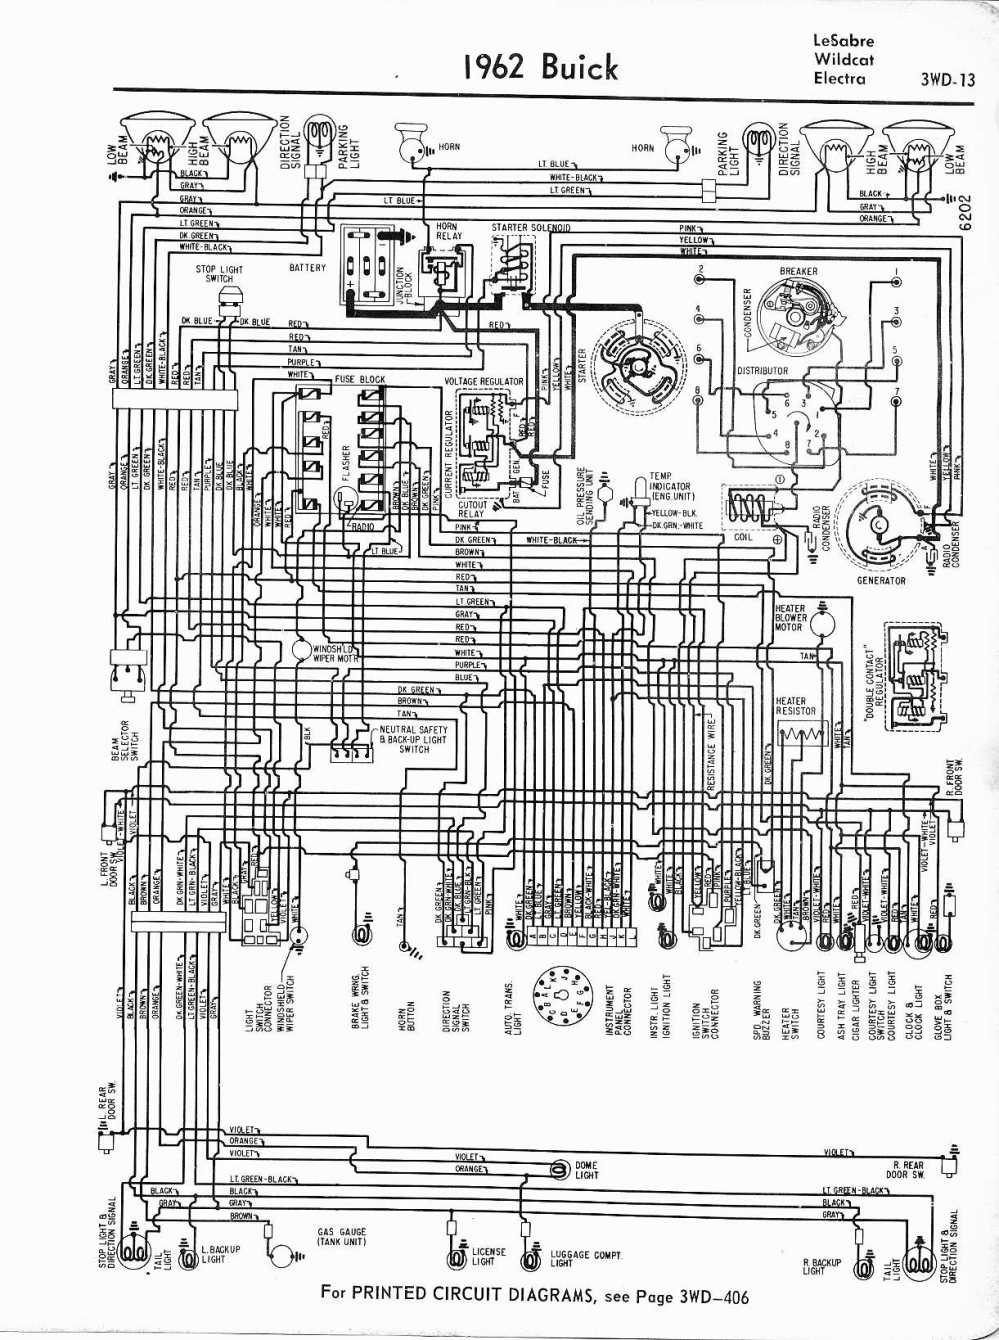 medium resolution of 19571965 accessory wiring diagrams 3wd428jpg wiring diagram center economy wildcat wiring diagram